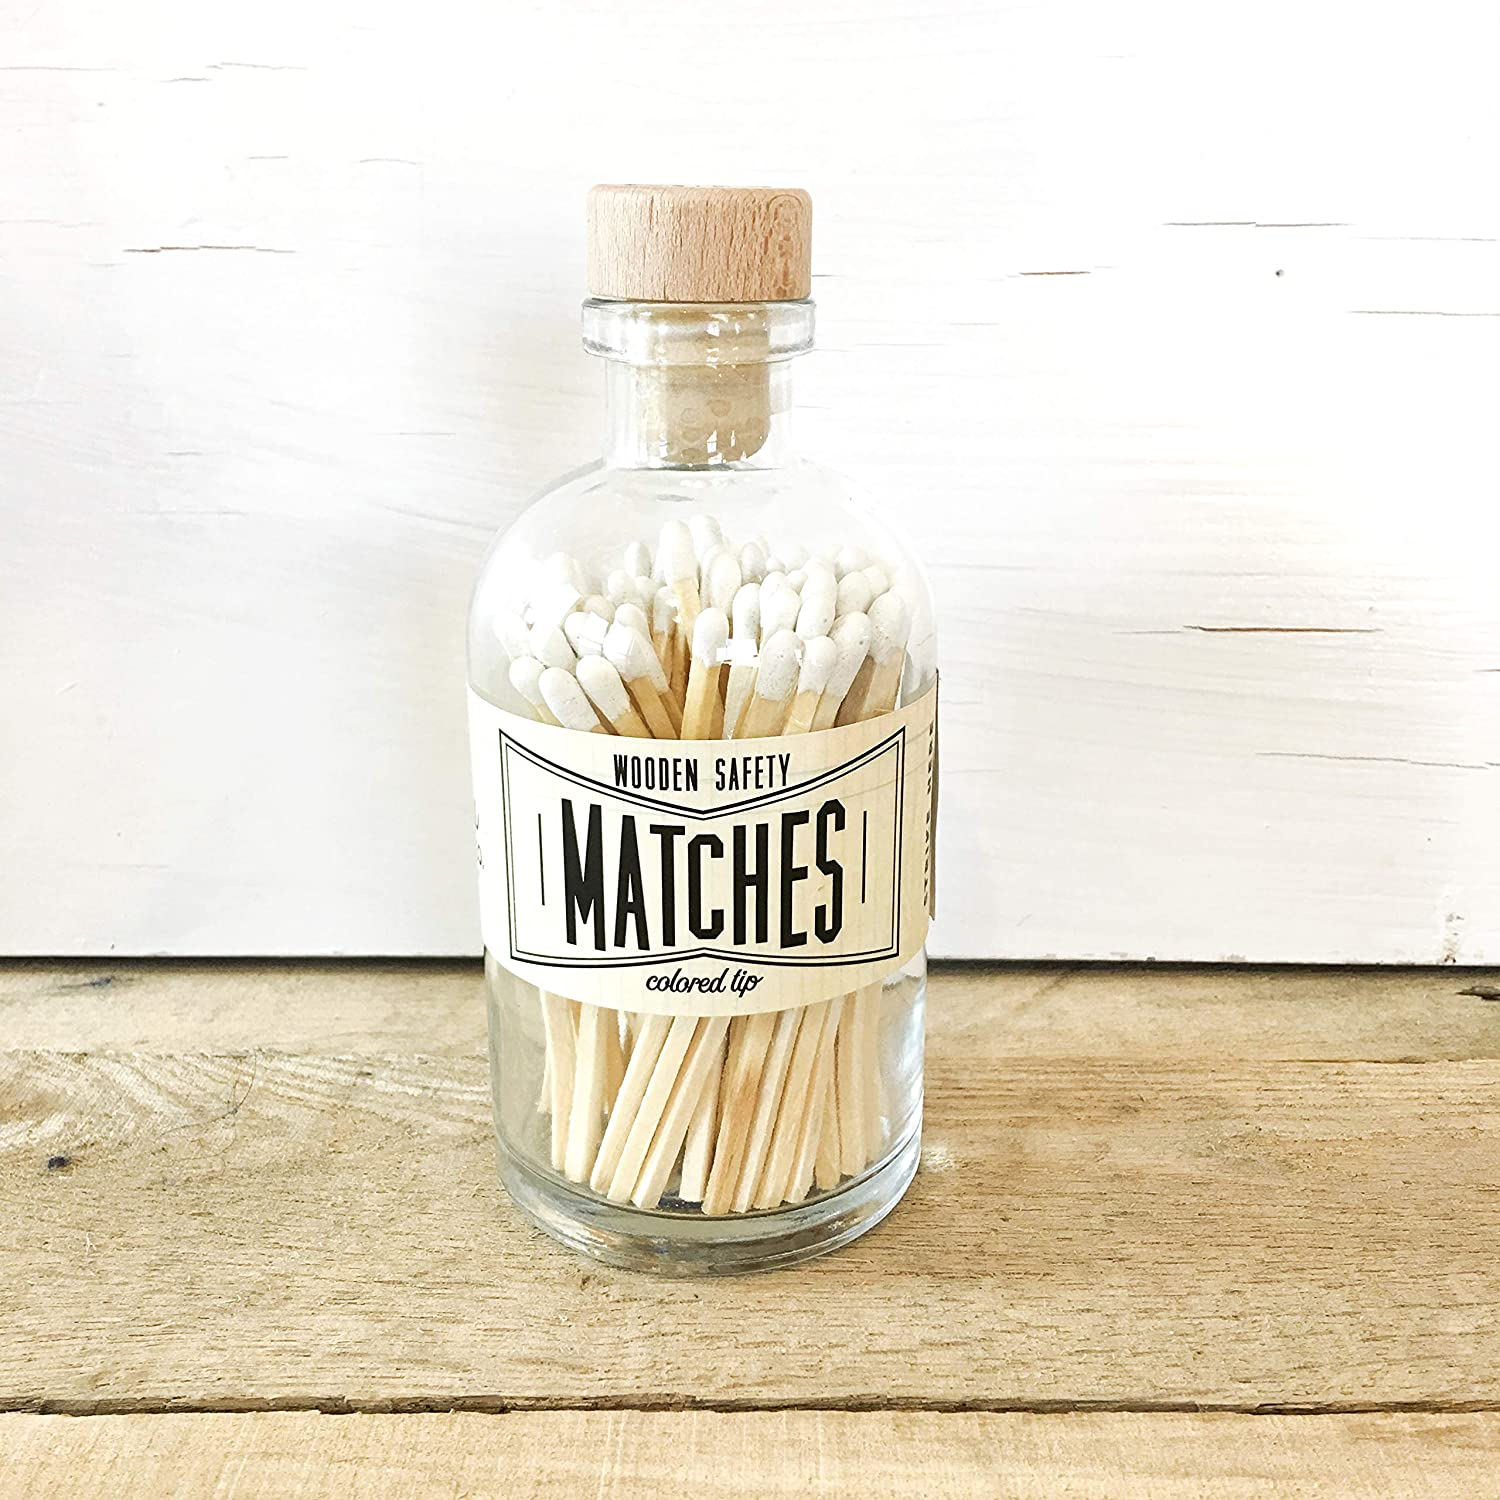 Match Sticks Decorative Glass Bottle Farmhouse Home Decor Best Seller Most Popular Item Coral Tip Colored Matches Unique Gifts for her